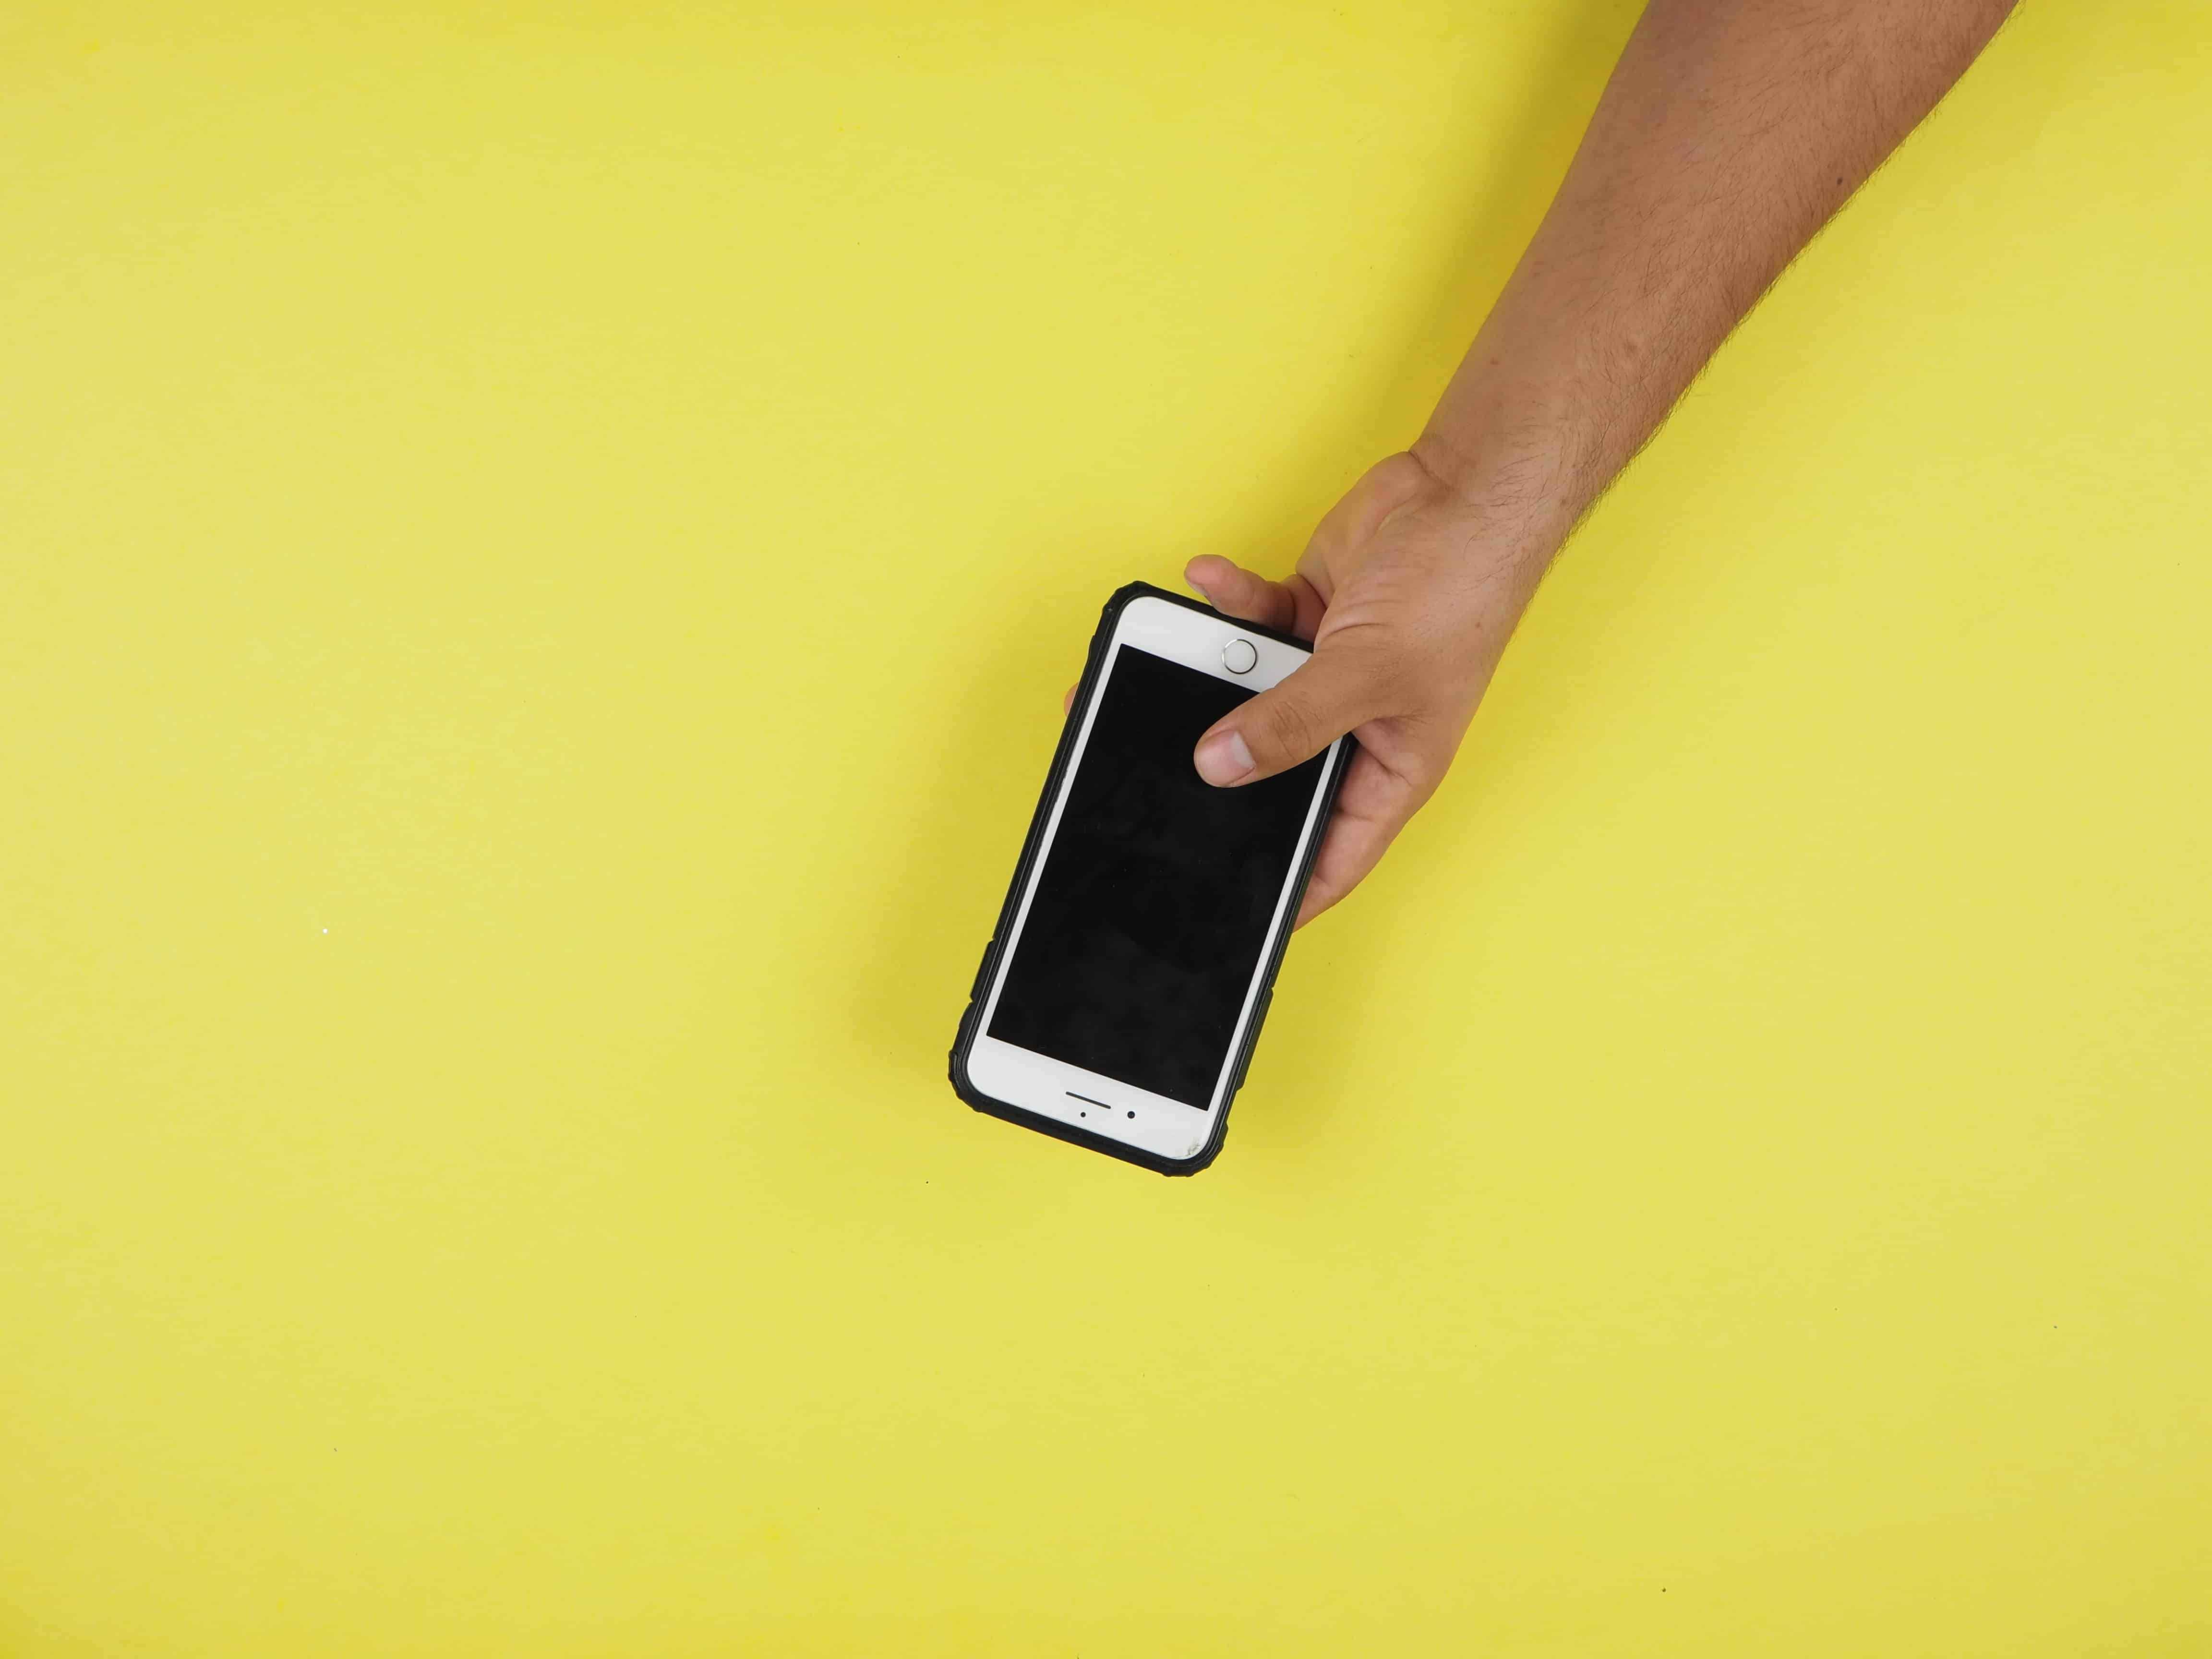 Smartphones are easy recording devices for anthropological interviews